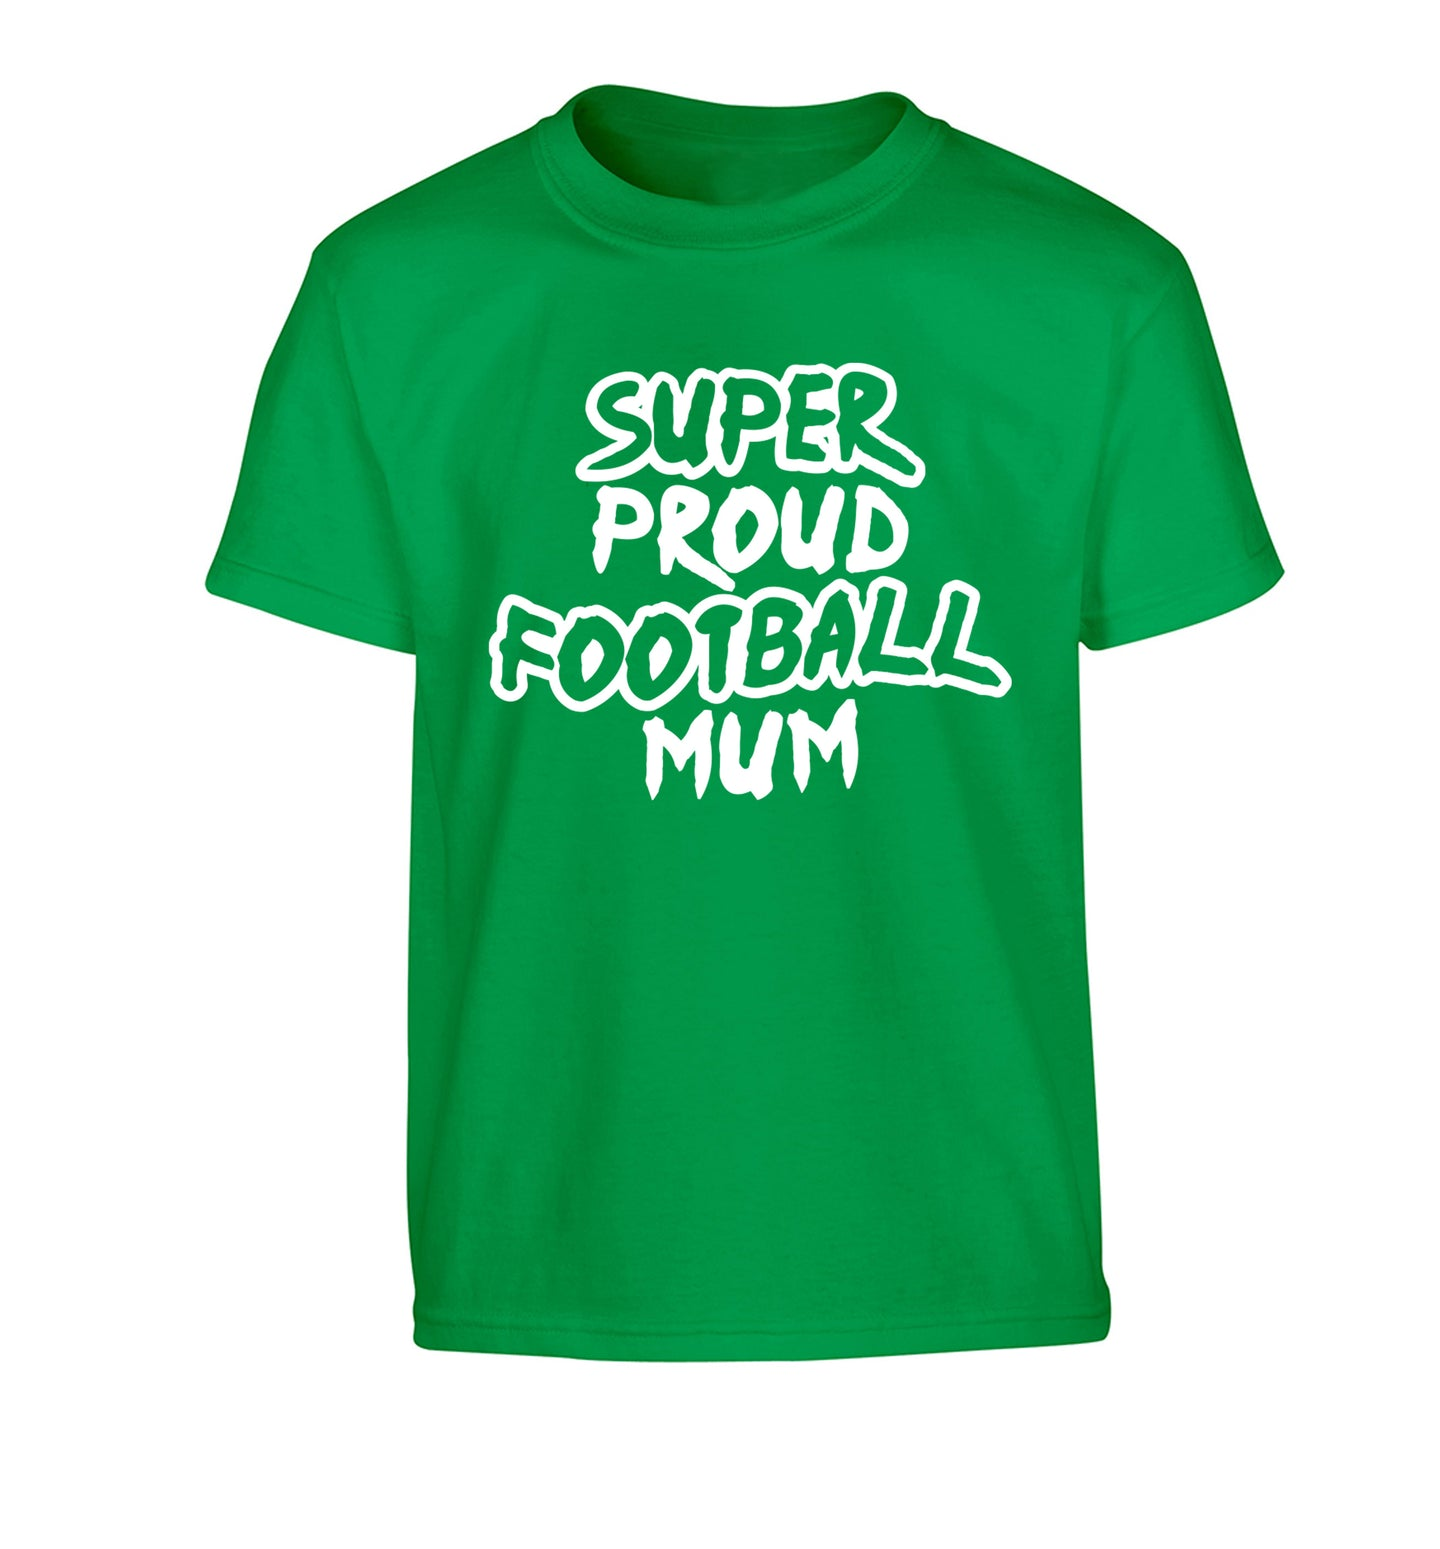 Super proud football mum Children's green Tshirt 12-14 Years